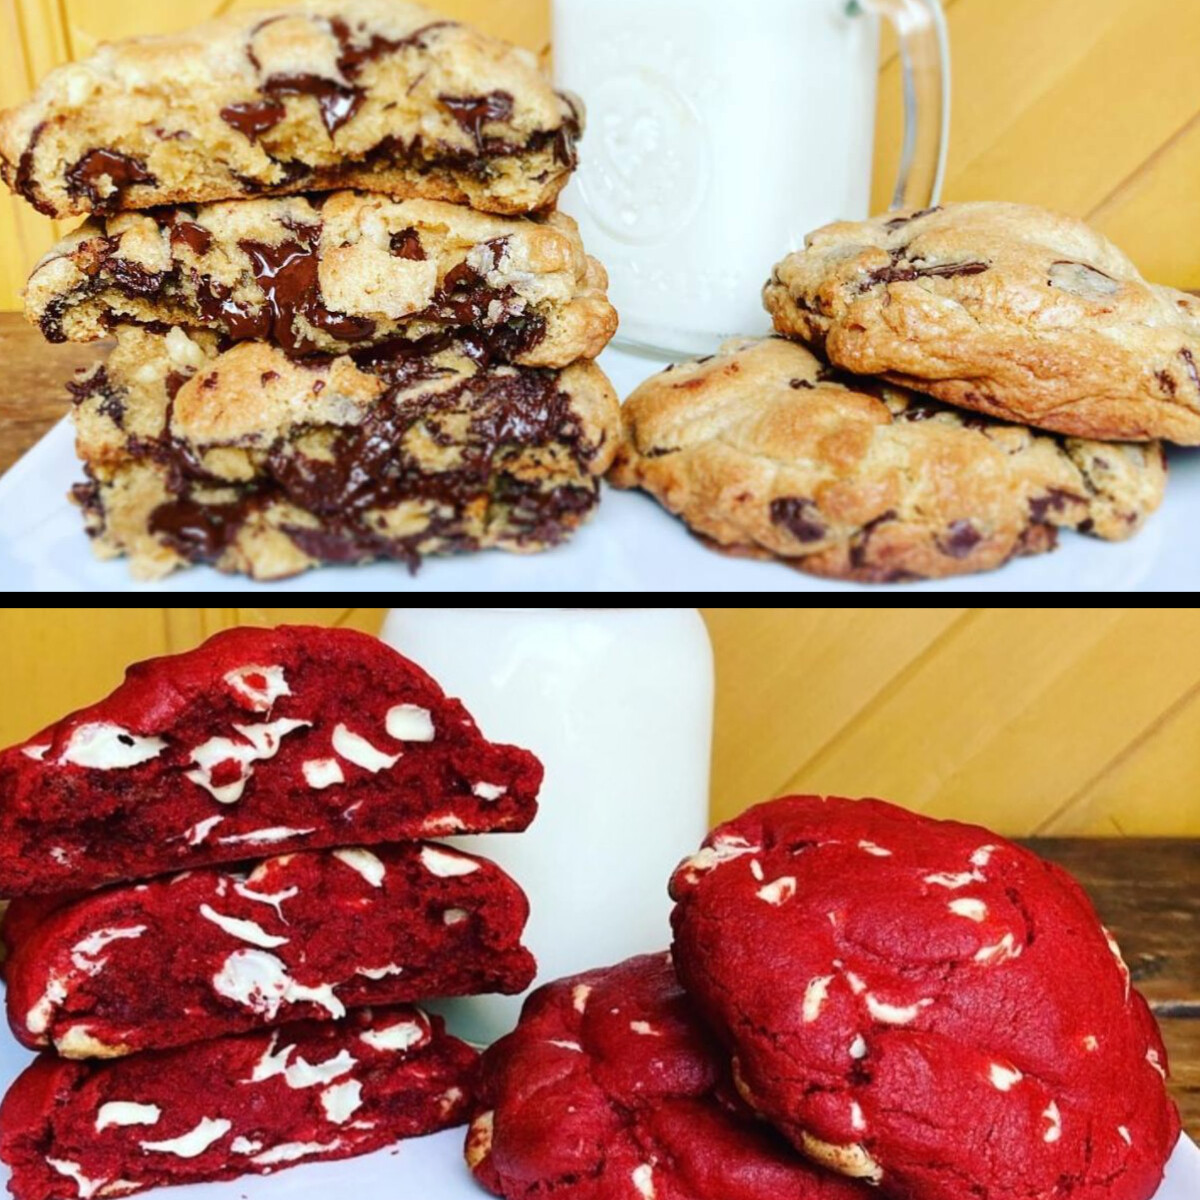 """3 So Extravagants Biscuits aux Brisures de Chocolat """" Style New York """" et 3 So Velvety Biscuits Red Velvet """" Style New York """" au chocolat blanc Belge."""